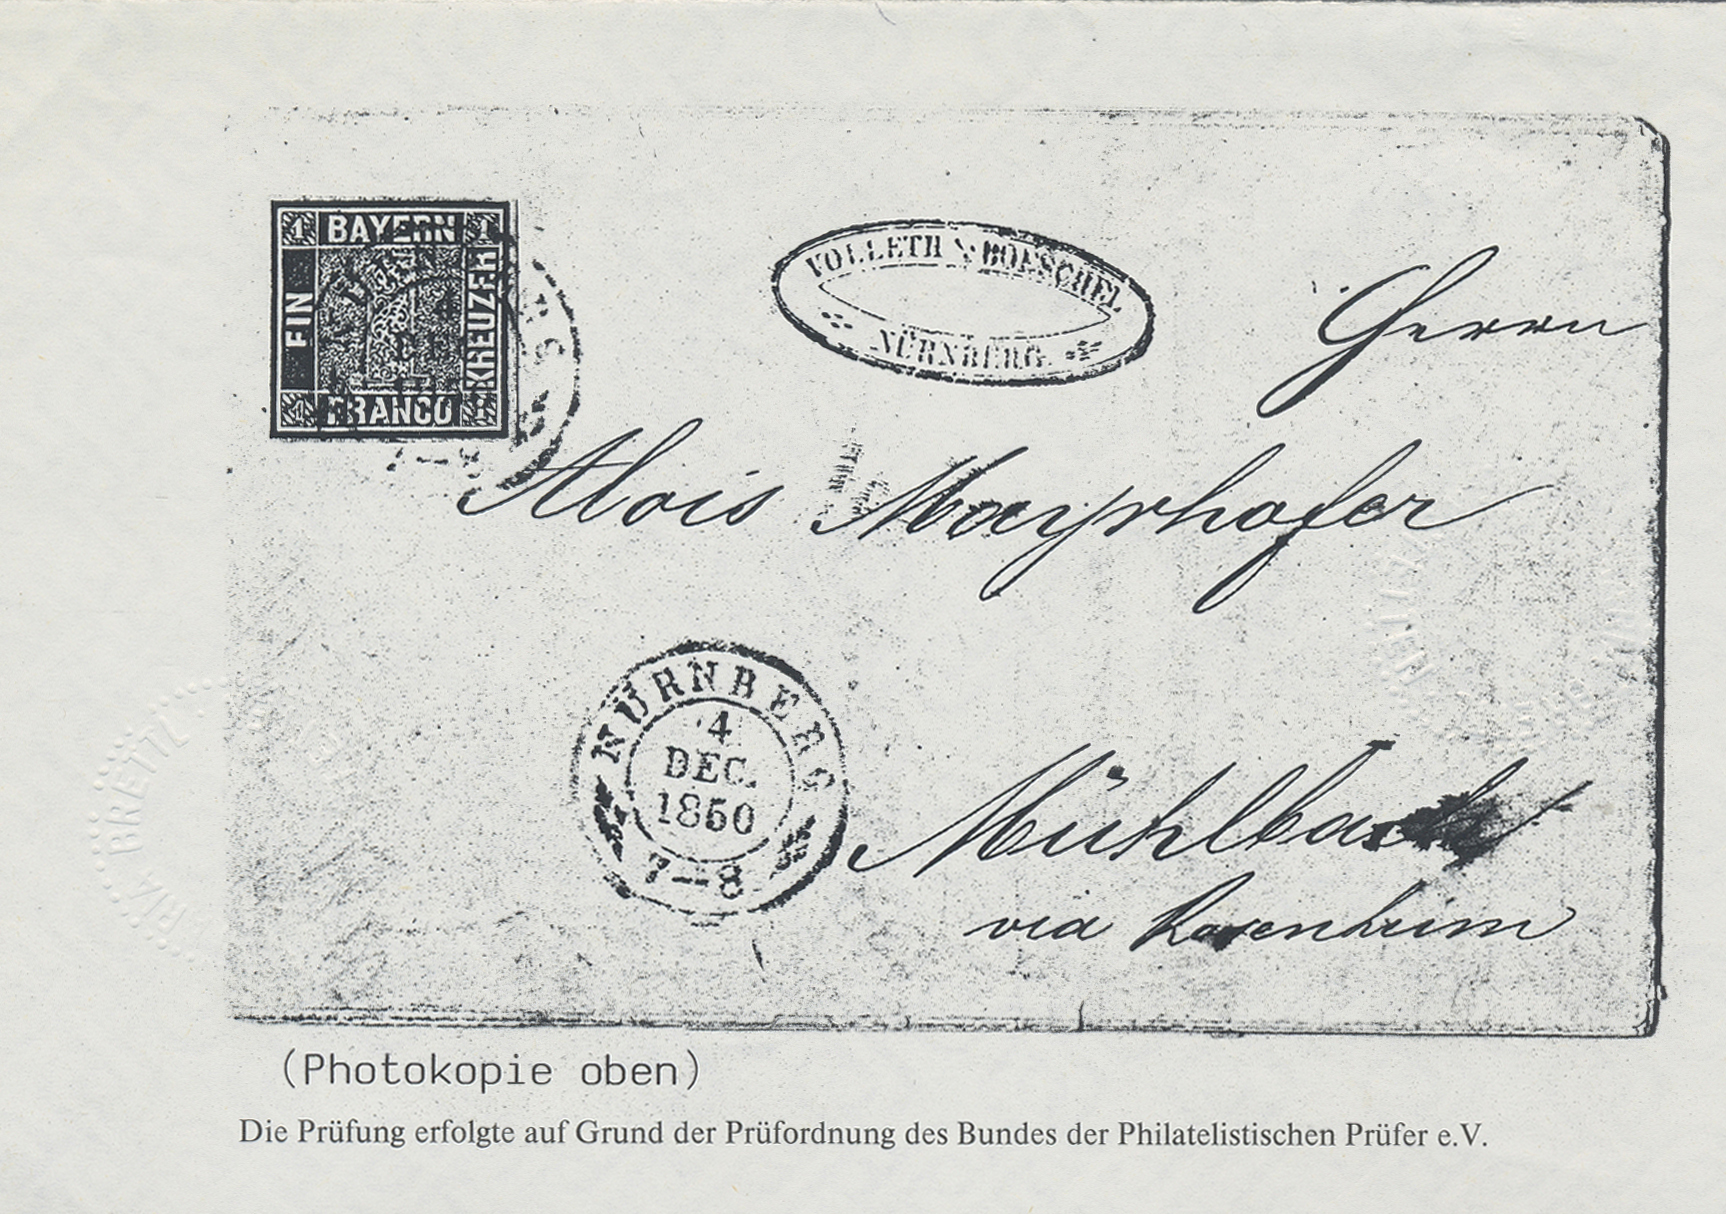 Lot 17061 - Bayern - Marken und Briefe  -  Auktionshaus Christoph Gärtner GmbH & Co. KG Auction #40 Germany, Picture Post Cards, Collections Overseas, Thematics